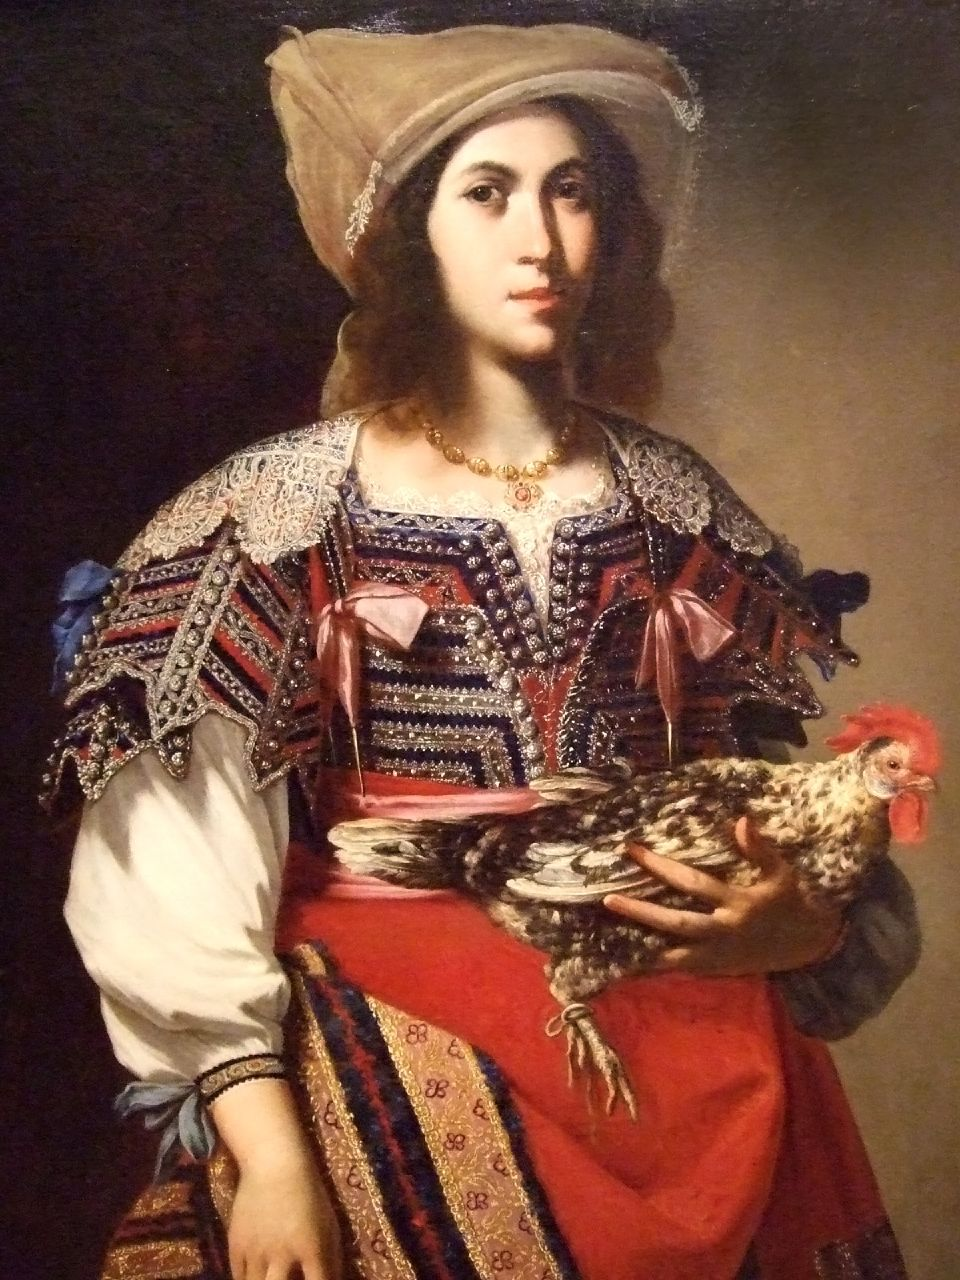 http://upload.wikimedia.org/wikipedia/commons/3/39/Stanzione%2C_Massimo_-_Woman_in_Neapolitan_Costume_-_1635.jpg